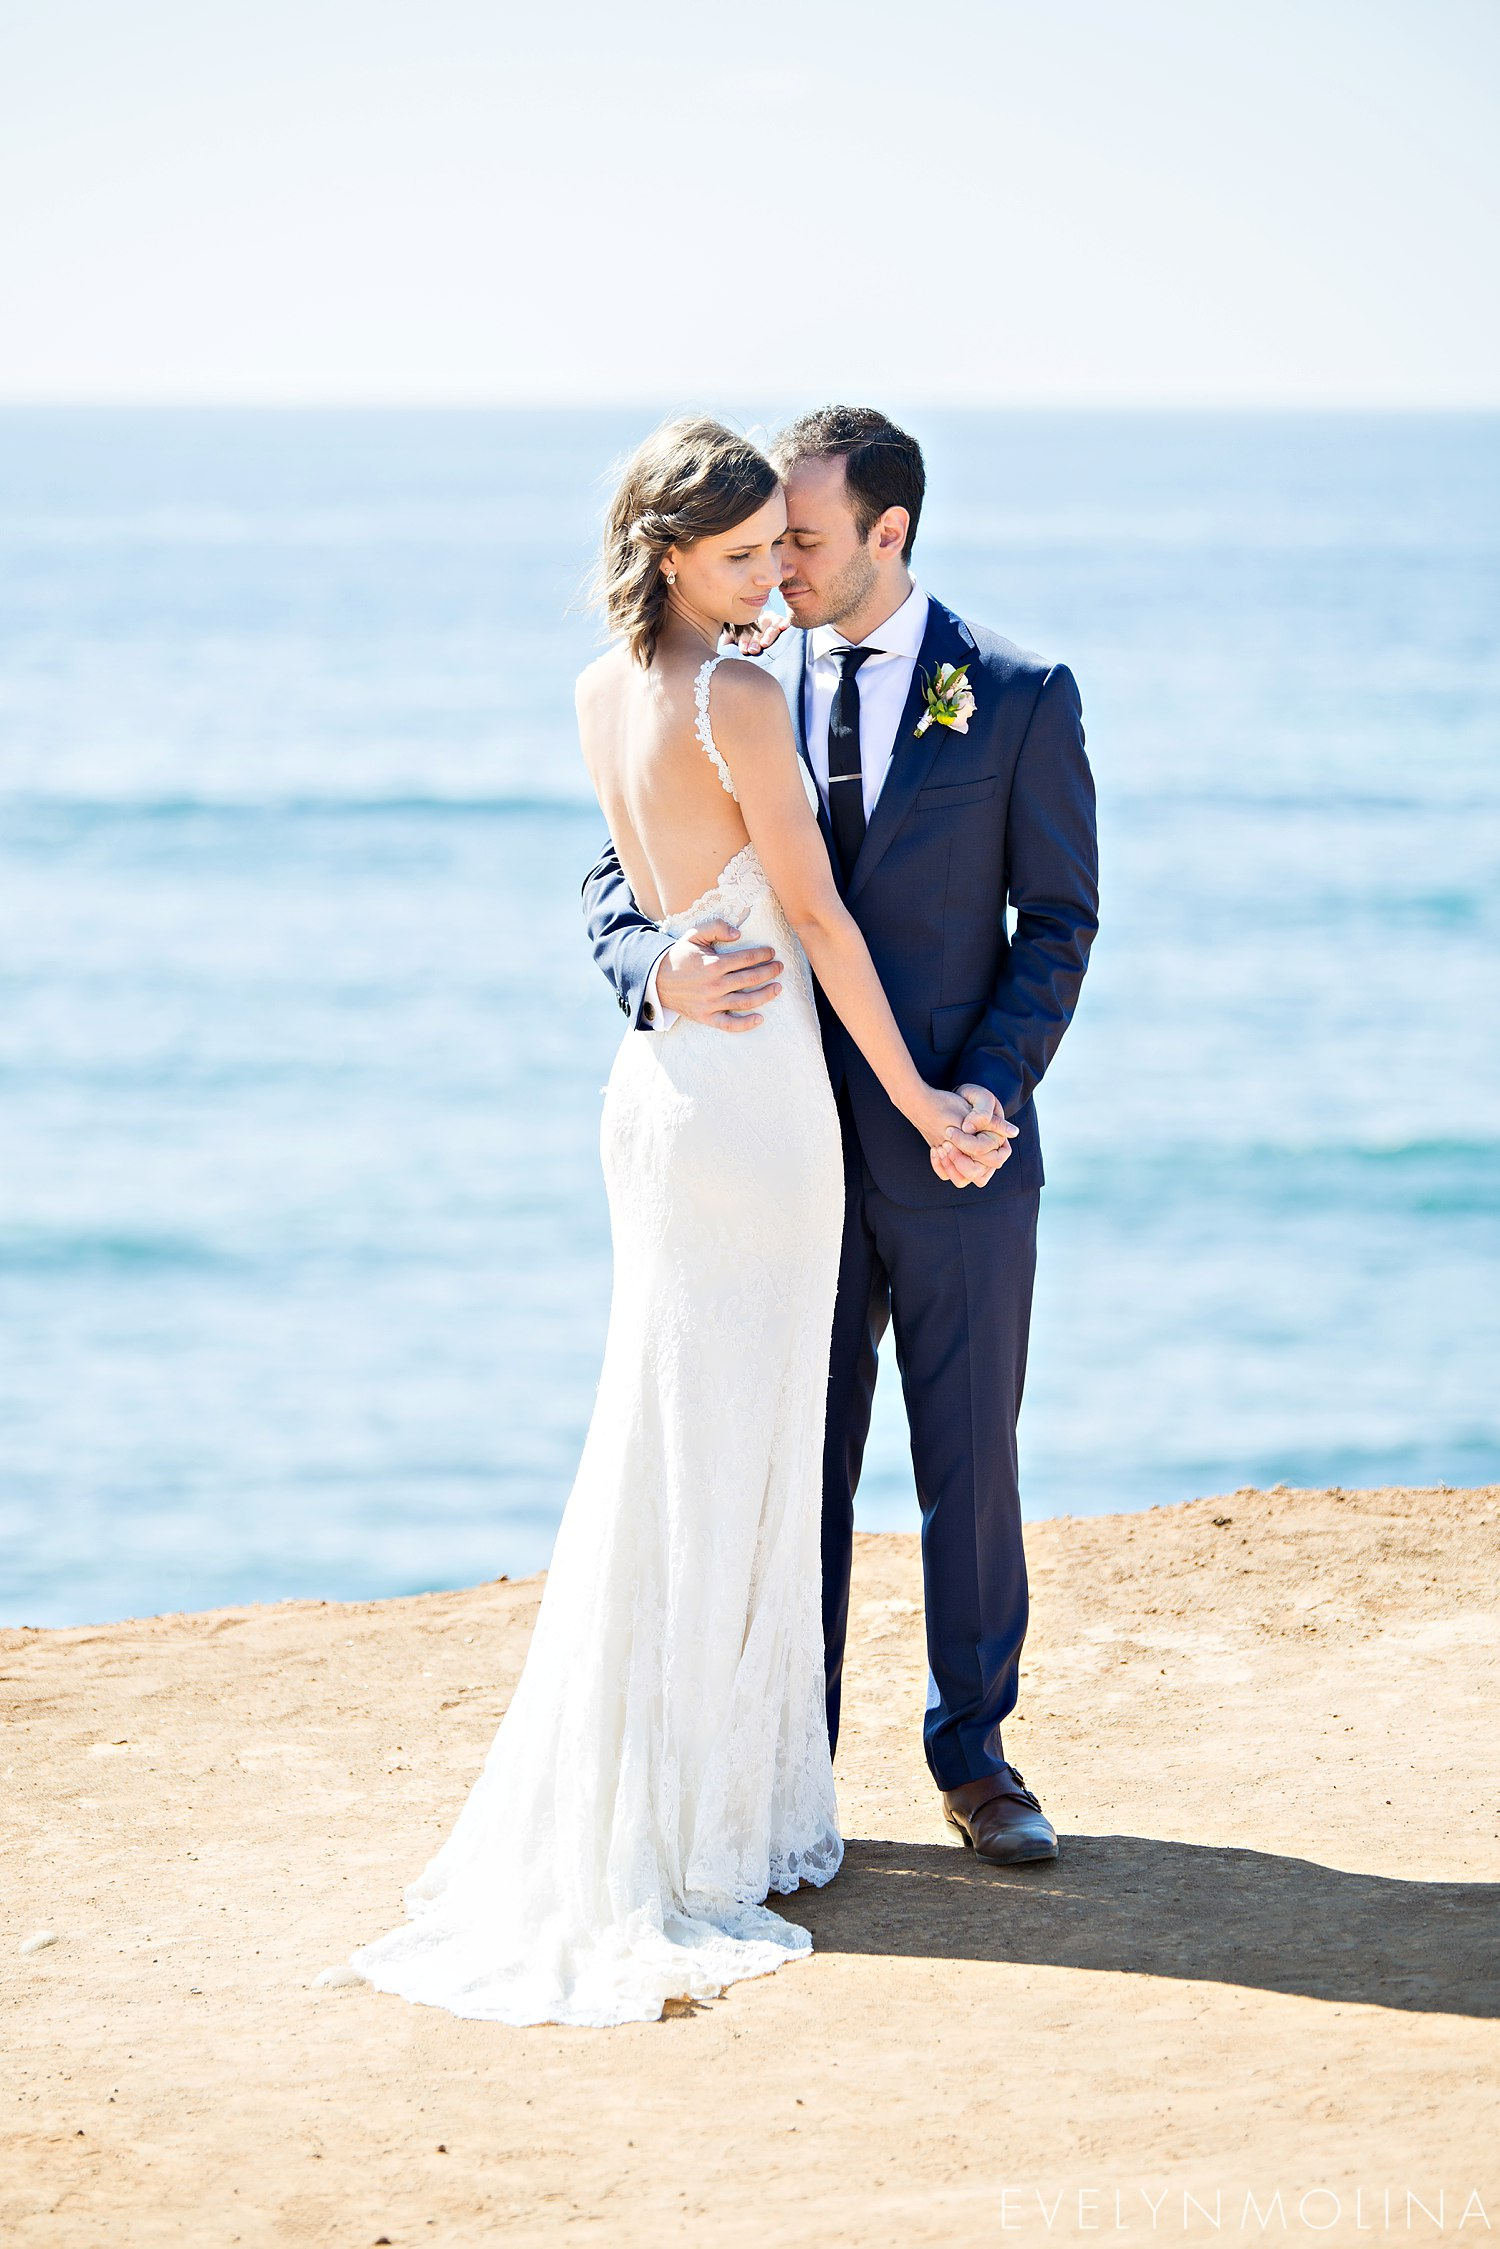 Sunset Cliffs Wedding Portraits - Becca and Alex - Evelyn Molina Photography_0007.jpg